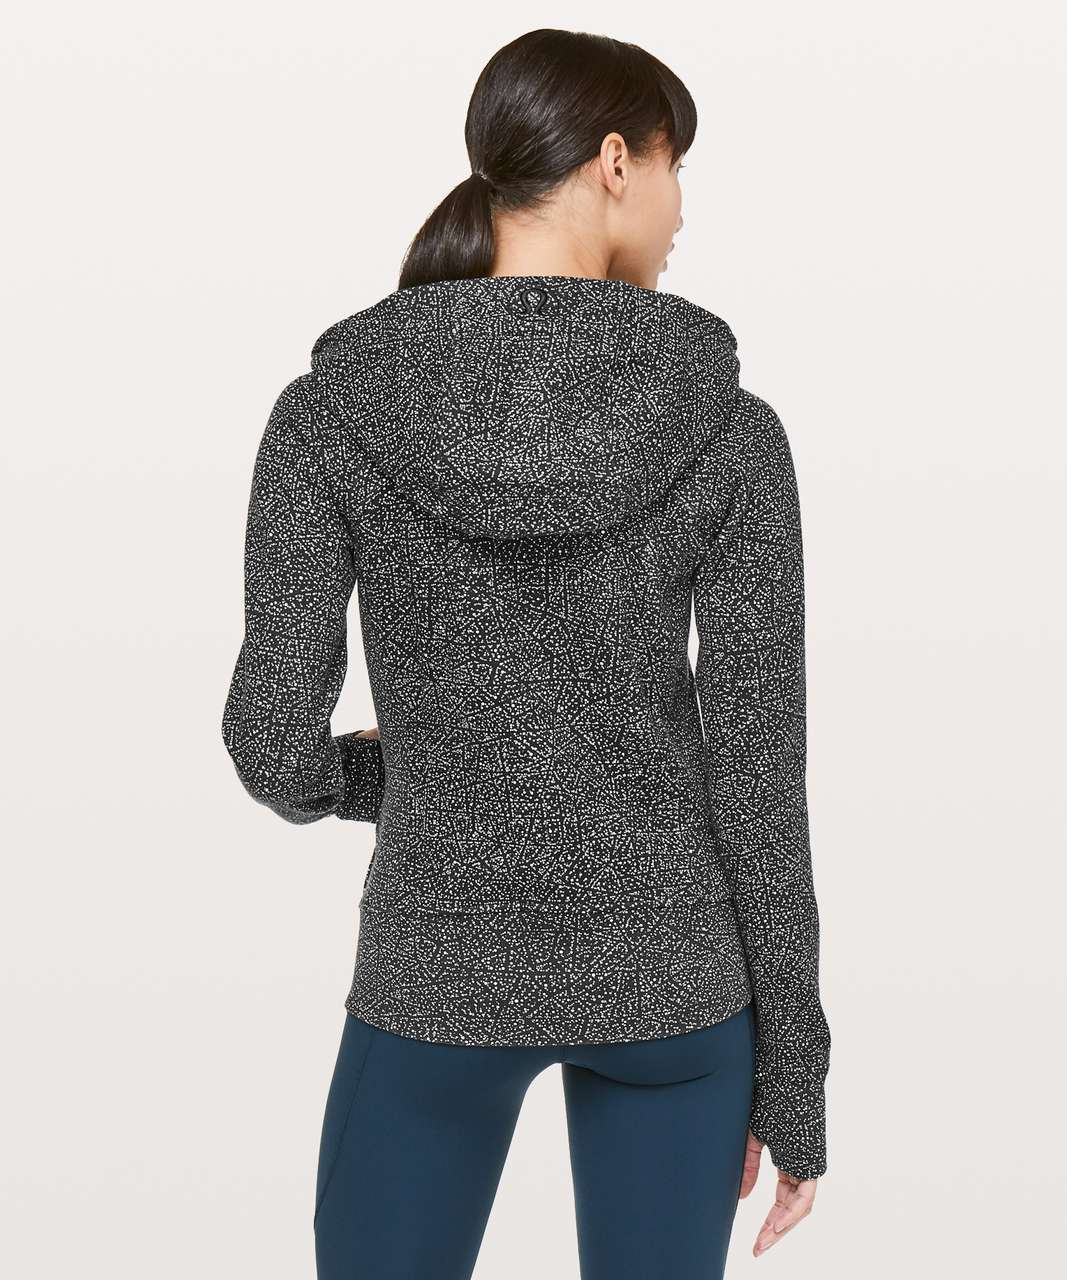 Lululemon Scuba Hoodie *Light Cotton Fleece - Night View White Black